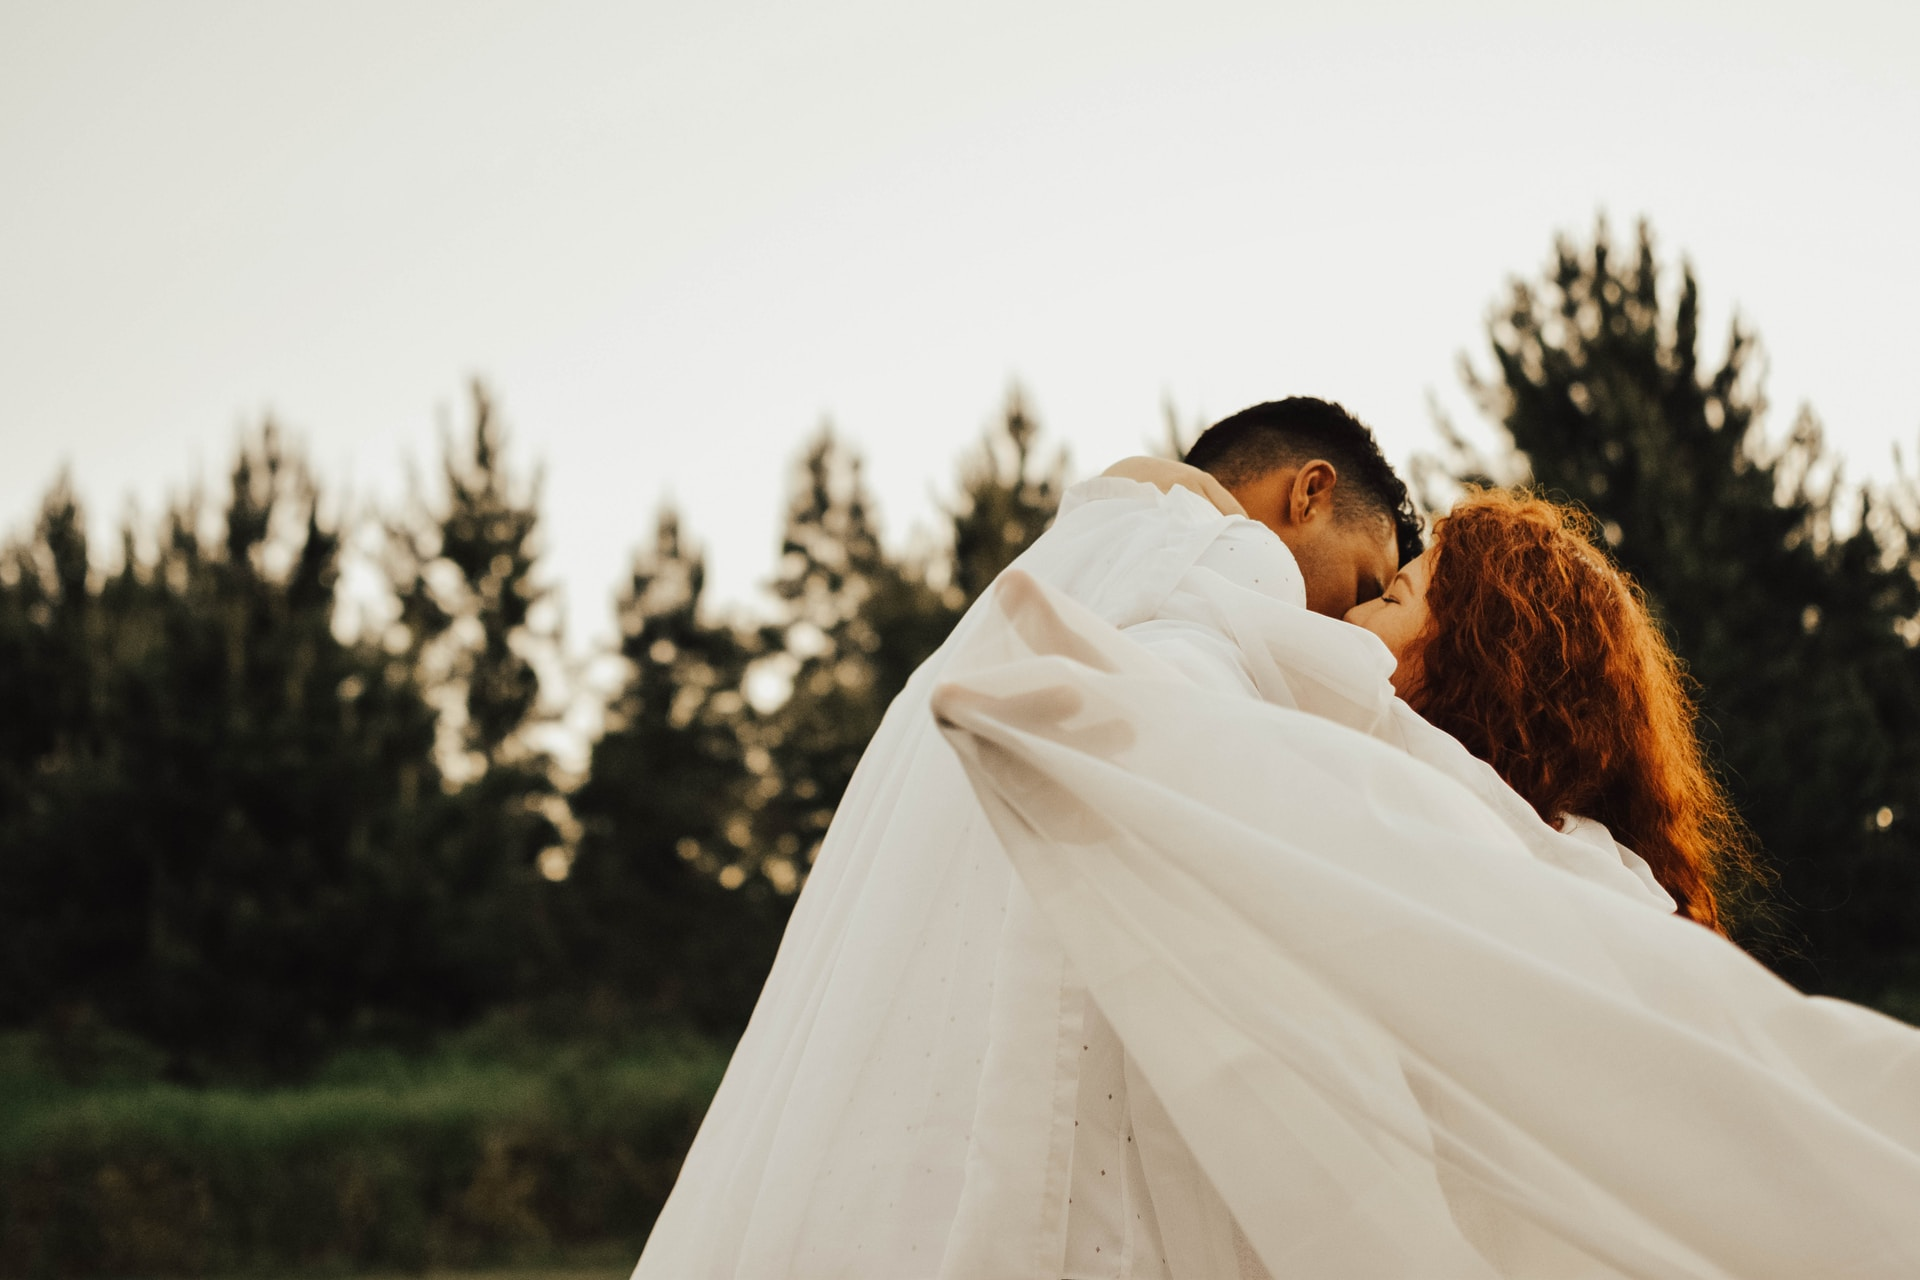 man kissing woman in fabric during daytime